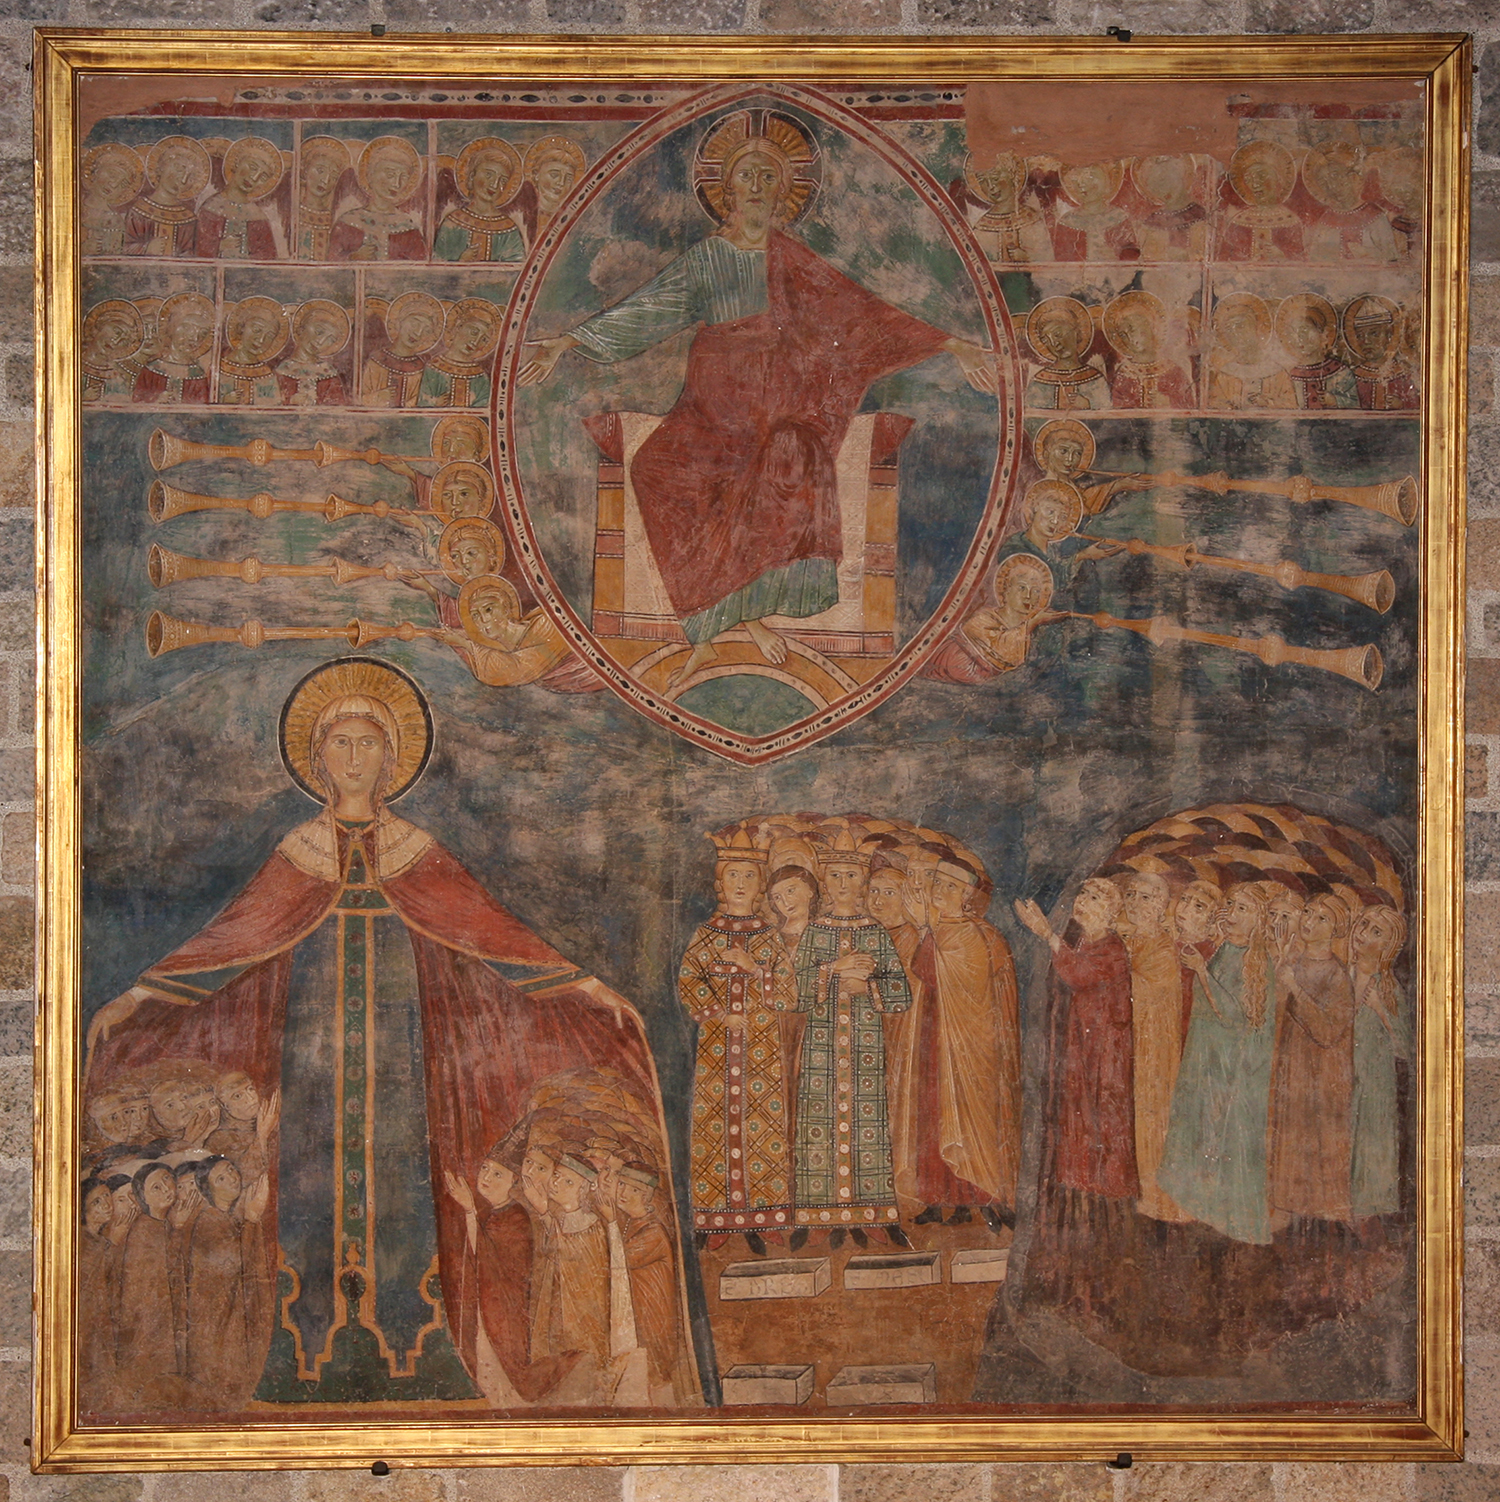 Figure 5:This fresco from a late thirteenth-century convent in Spoleto, Italy, features Christ in Majesty surrounded by archangels, elders, and trumpeting angels. Living and resurrected humans await judgment below. On exhibit in the Great Hall of Glencairn Museum (08.FS.06).